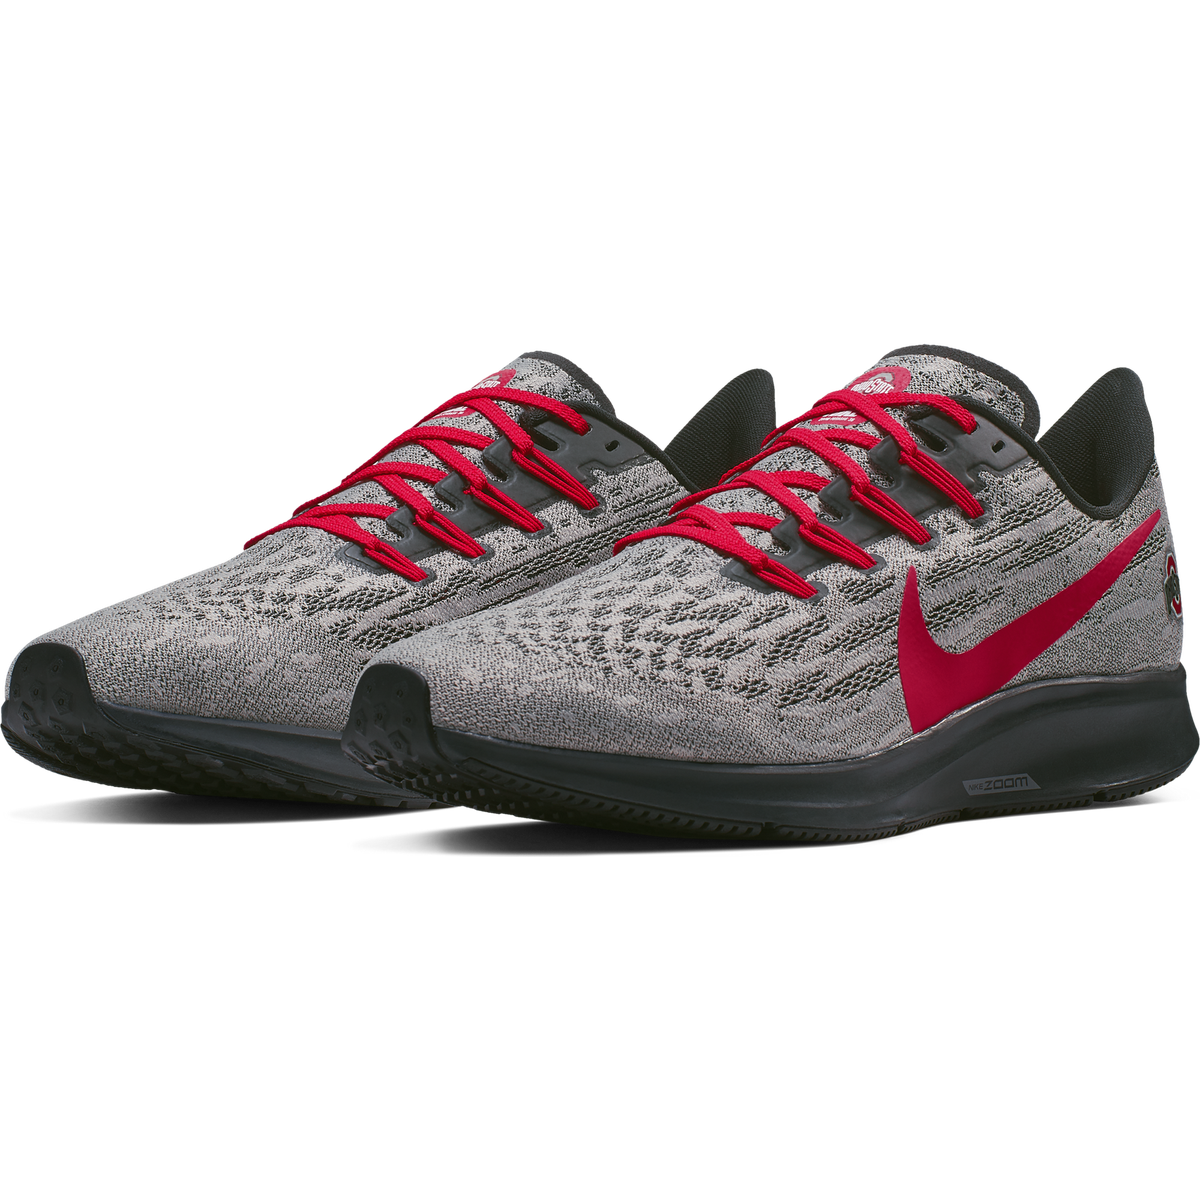 1ce2ec55 Nike drops the new Air Zoom Pegasus 36 Ohio State shoe collection ...